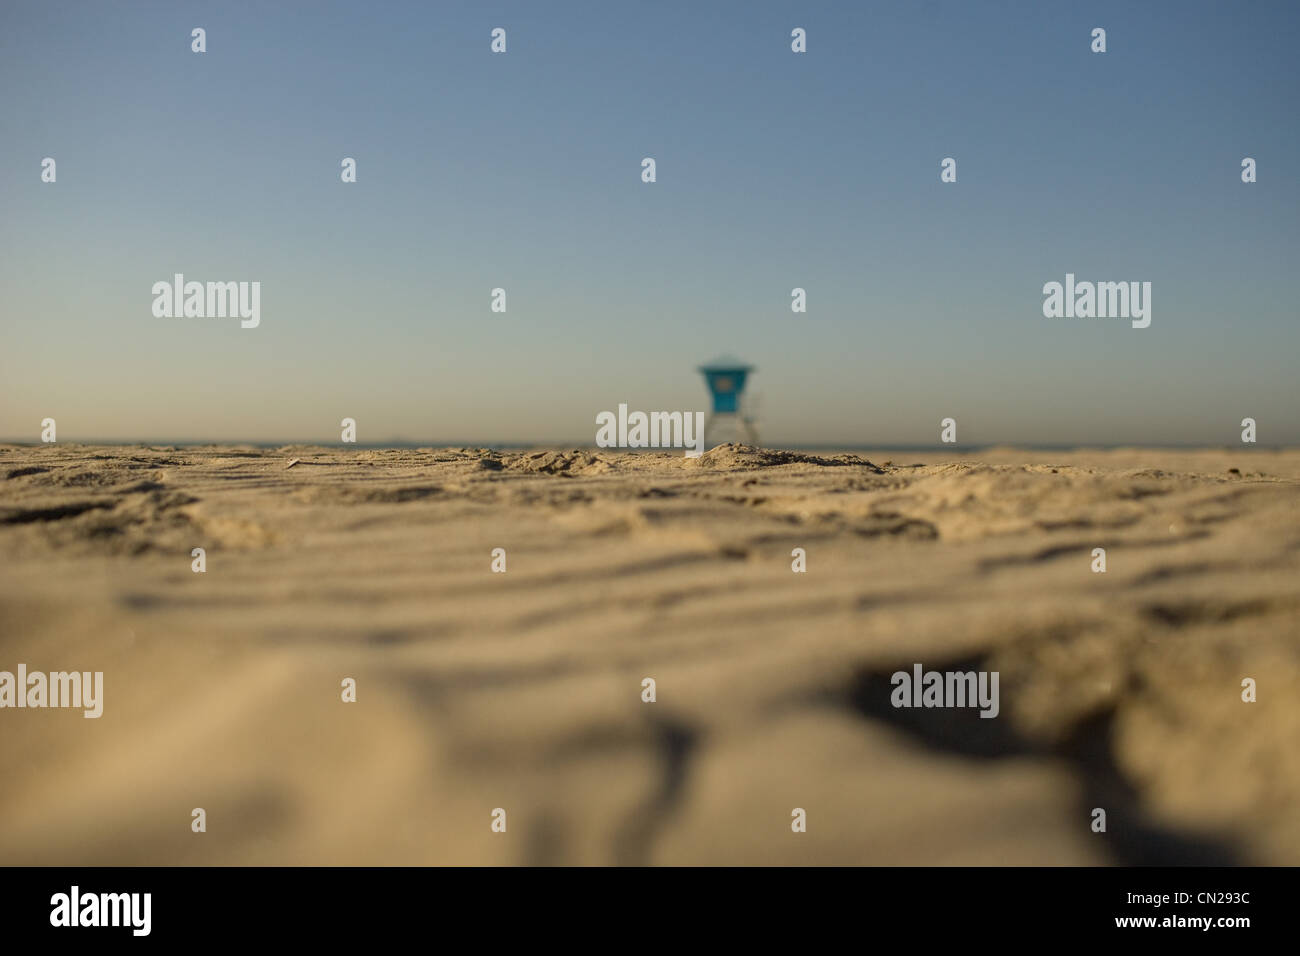 Distant lifeguard tower on sandy beach - Stock Image